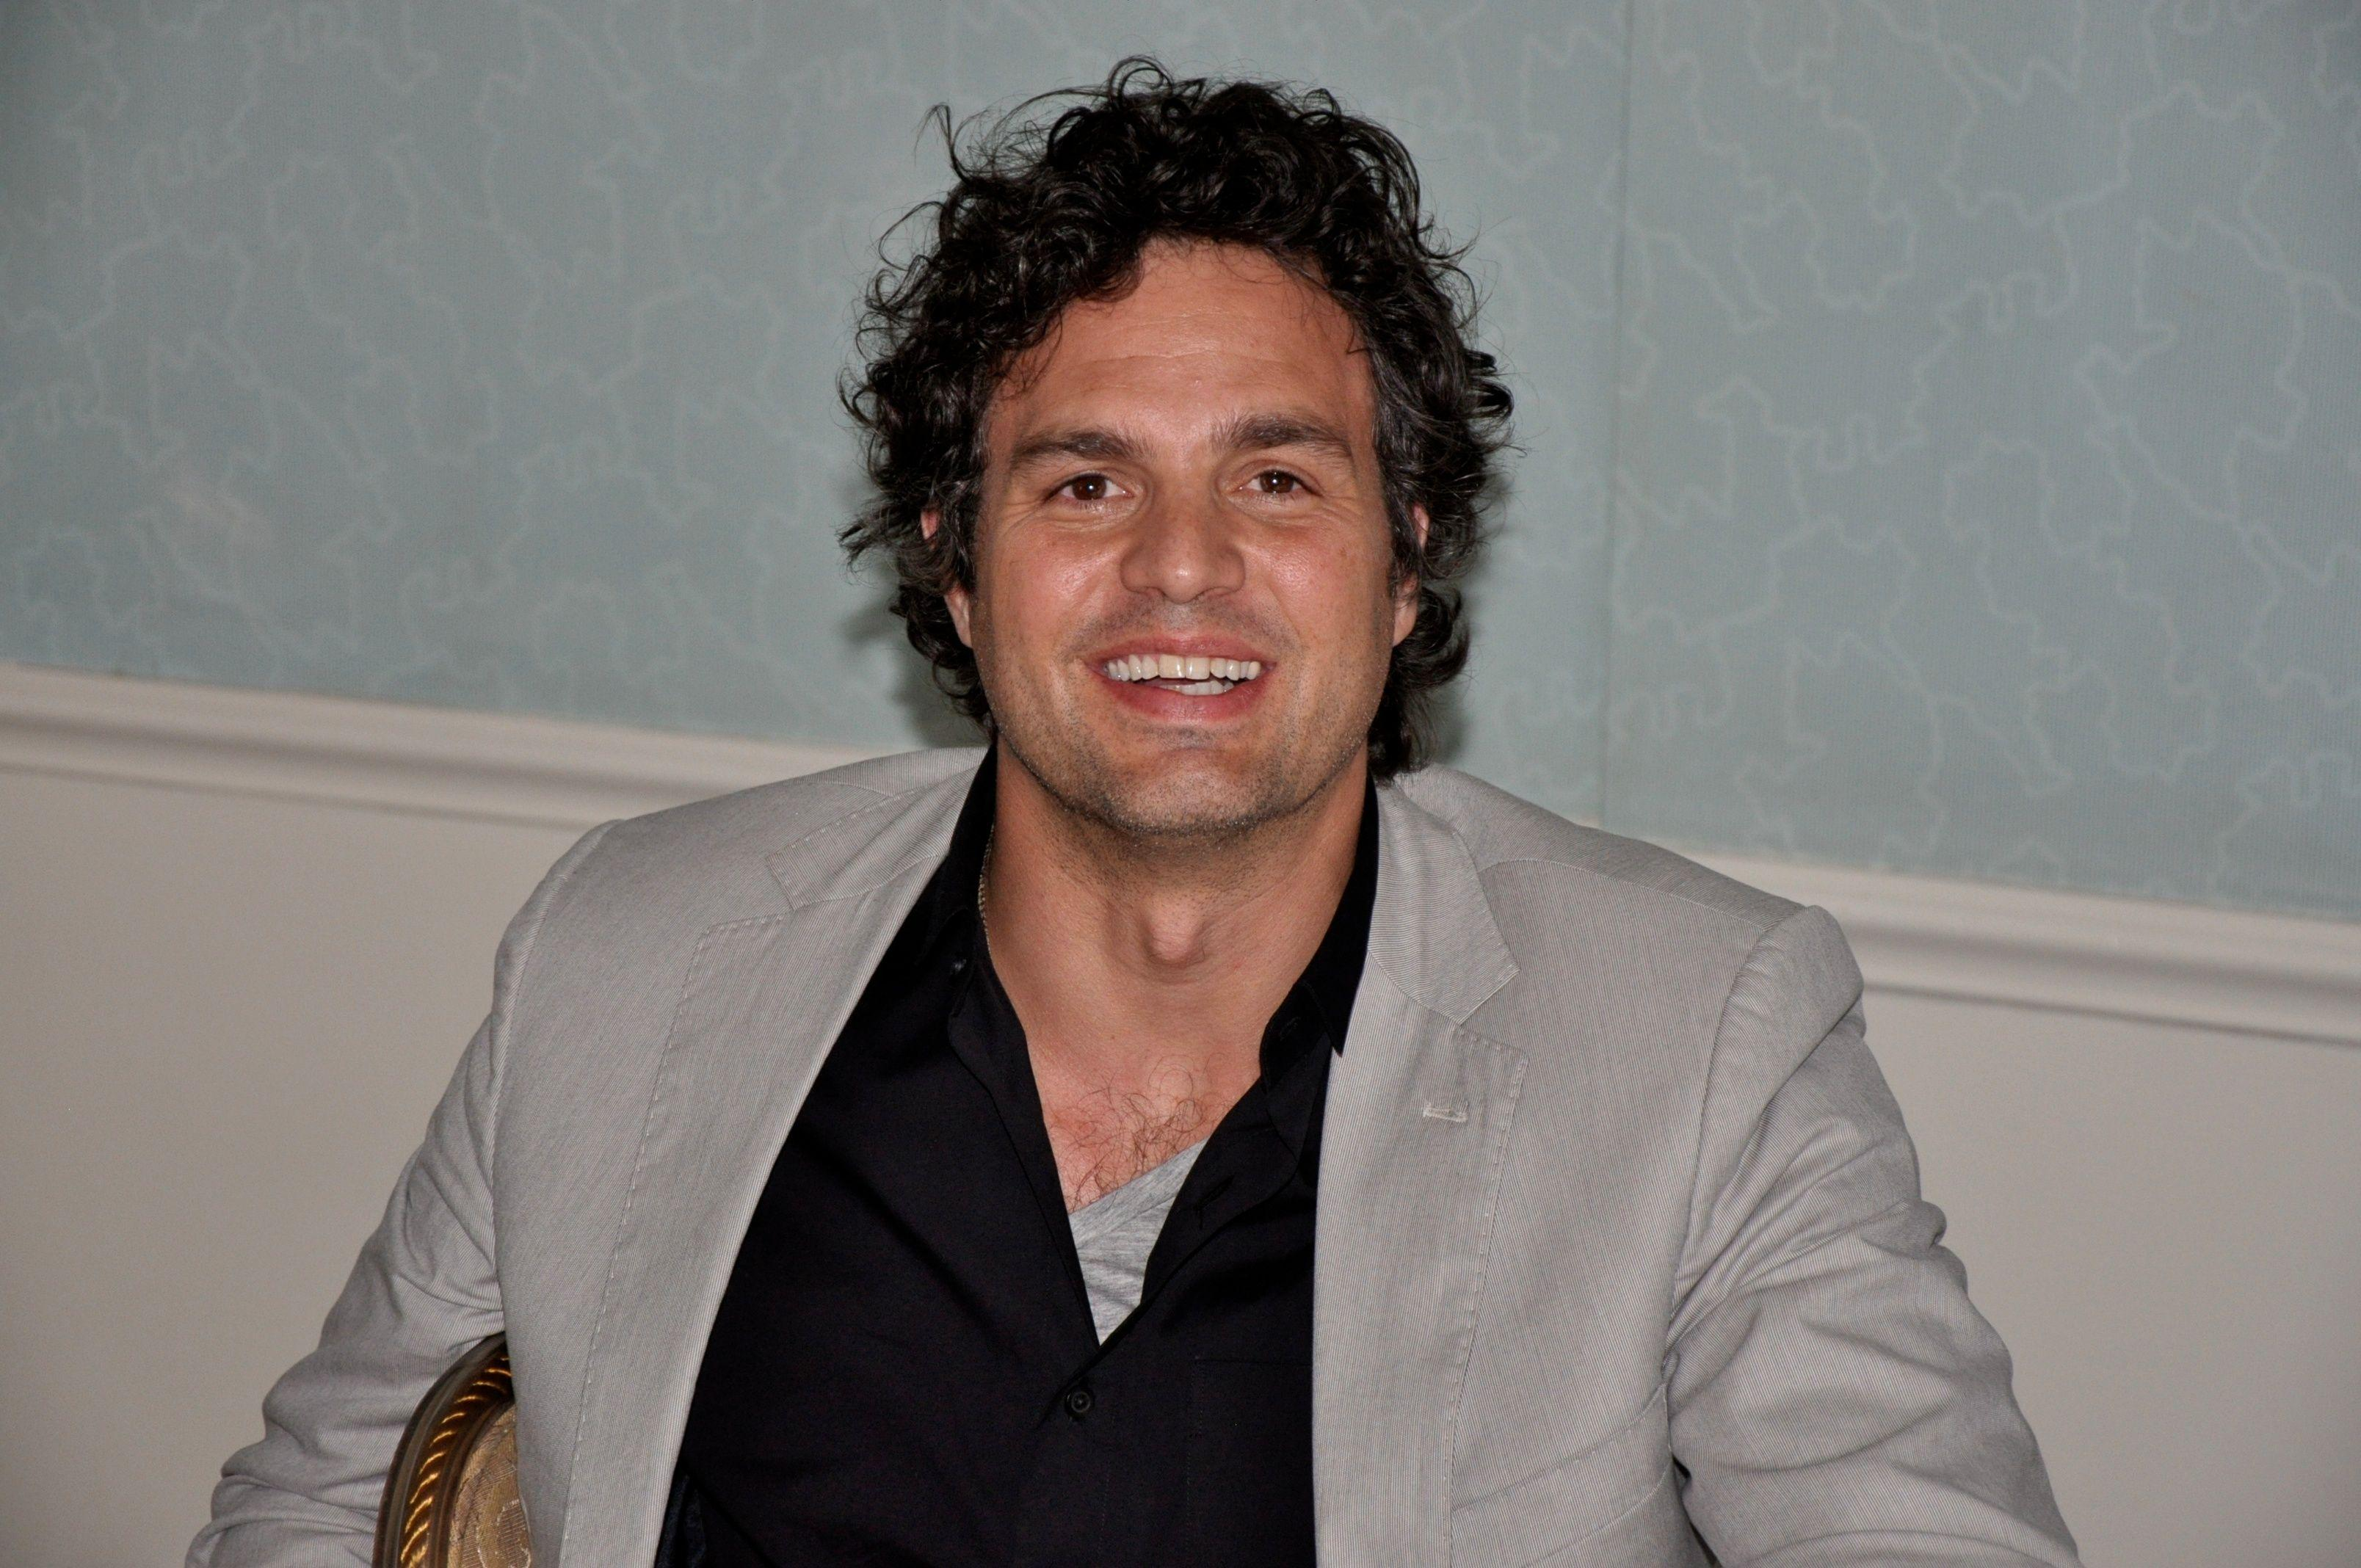 File:Mark Ruffalo